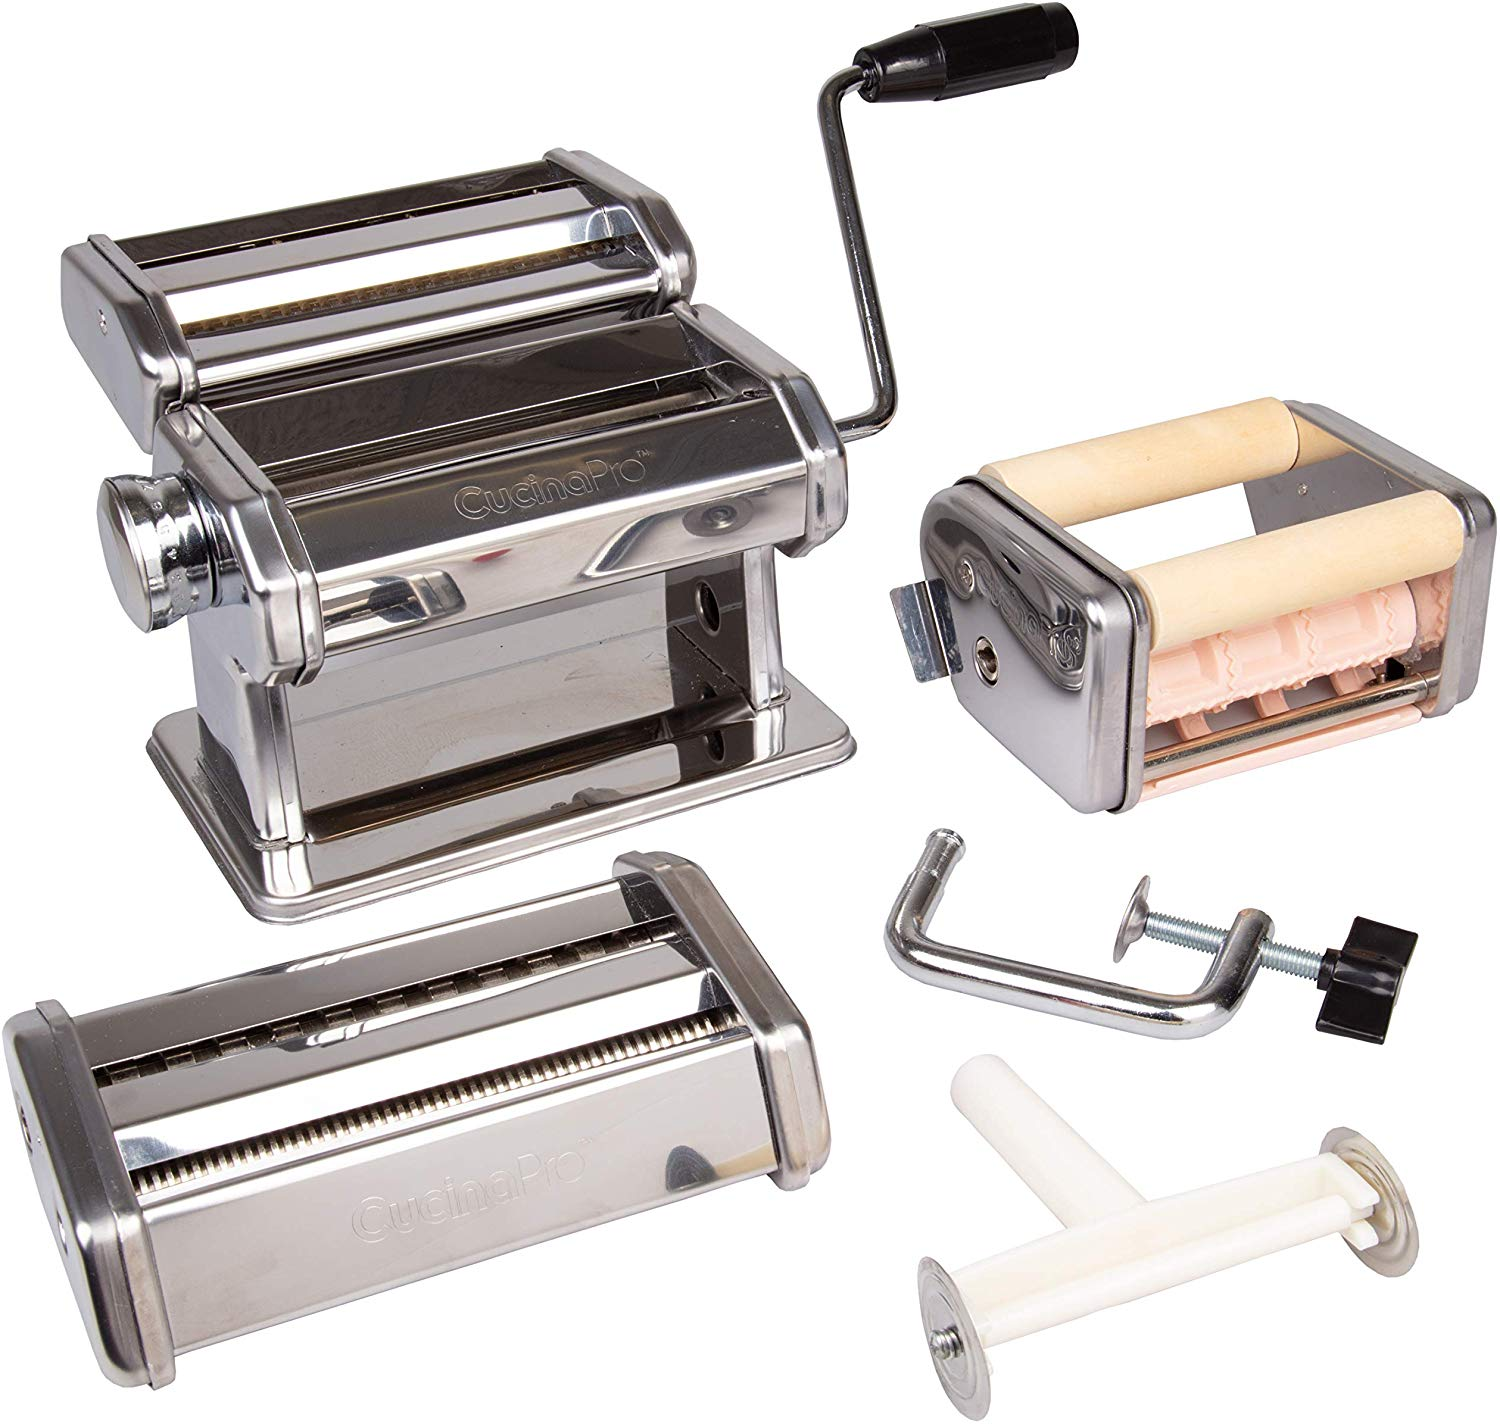 Pasta maker deluxe set by cucina pro